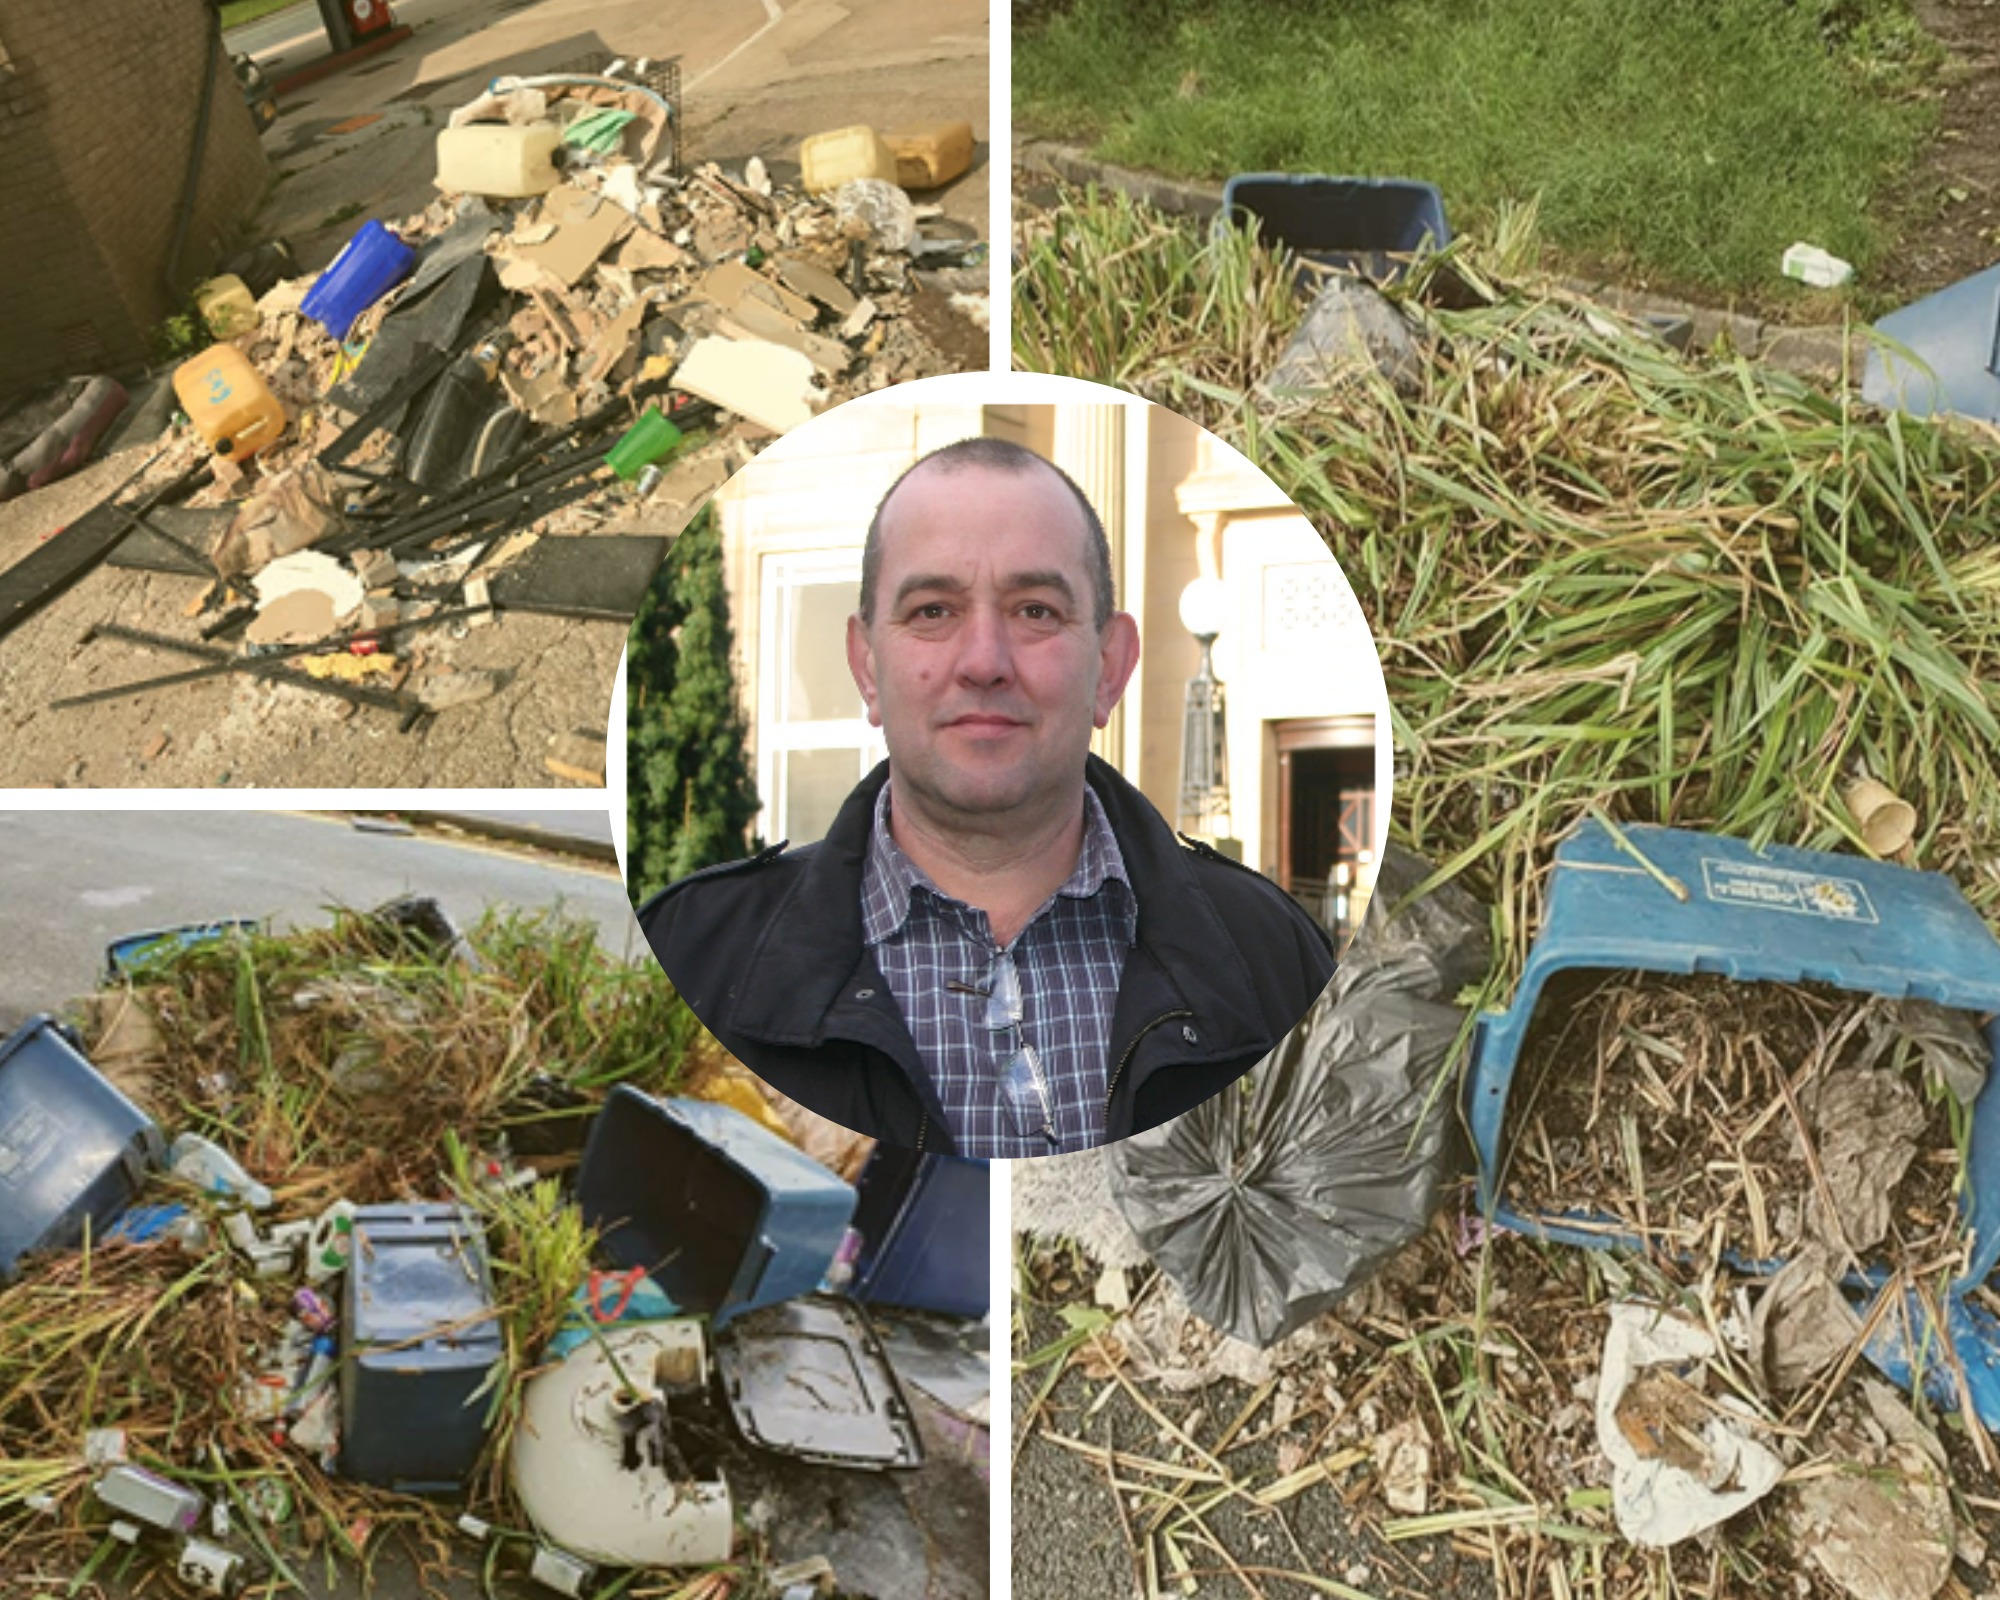 Councillor brands fly-tippers 'parasites' as rubbish strewn on town's main road